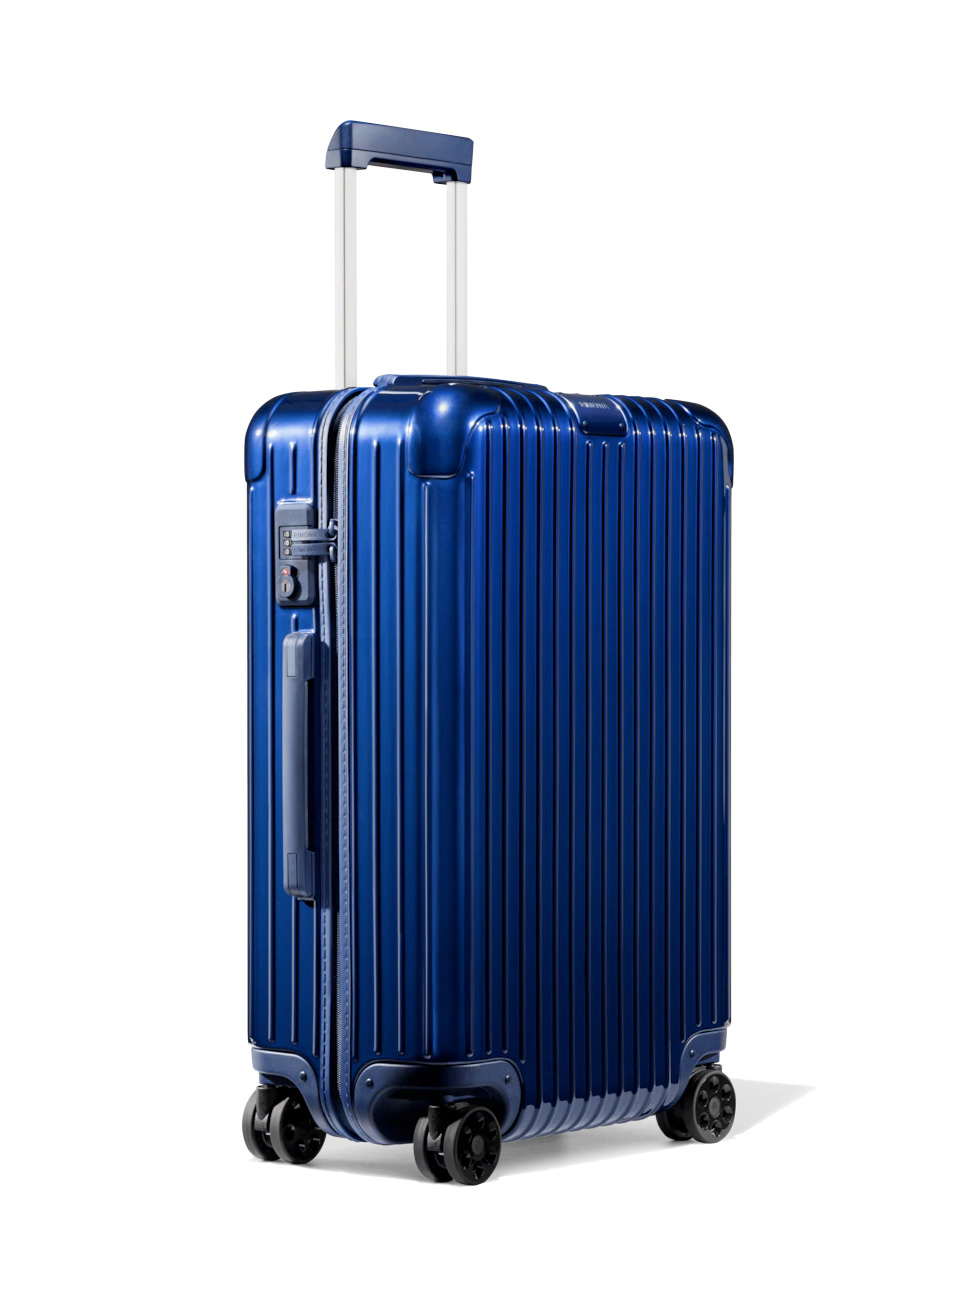 Best Places to Buy Luggage Online - Rimowa